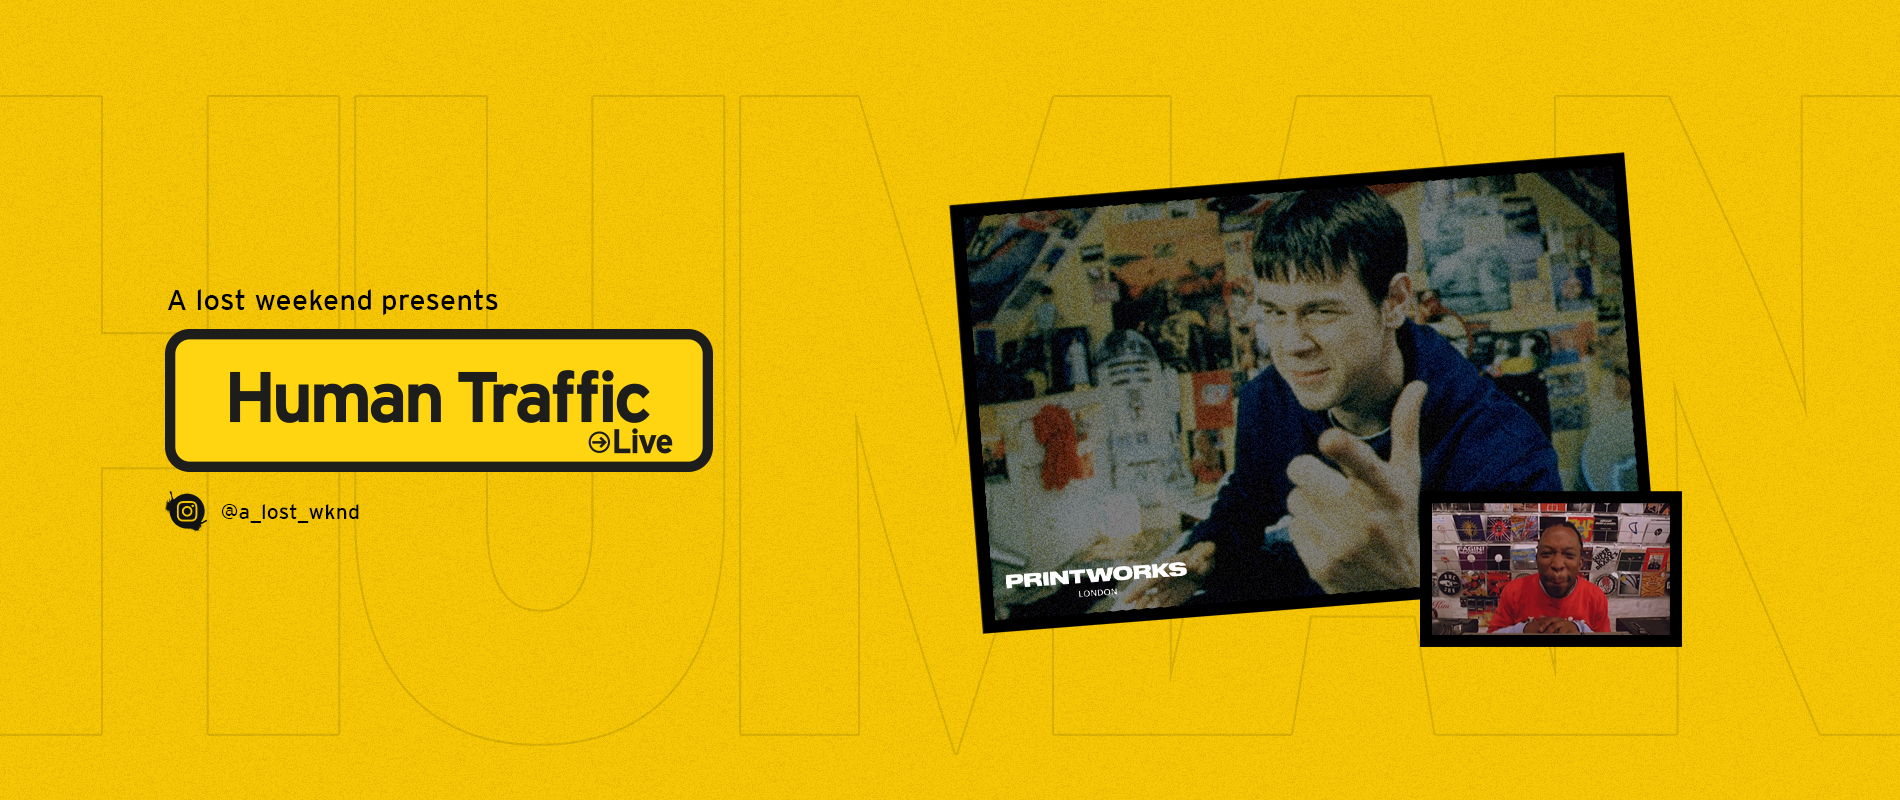 Human Traffic Live Then We Party Hard with the Worlds Biggest D'n'B Brand in the world